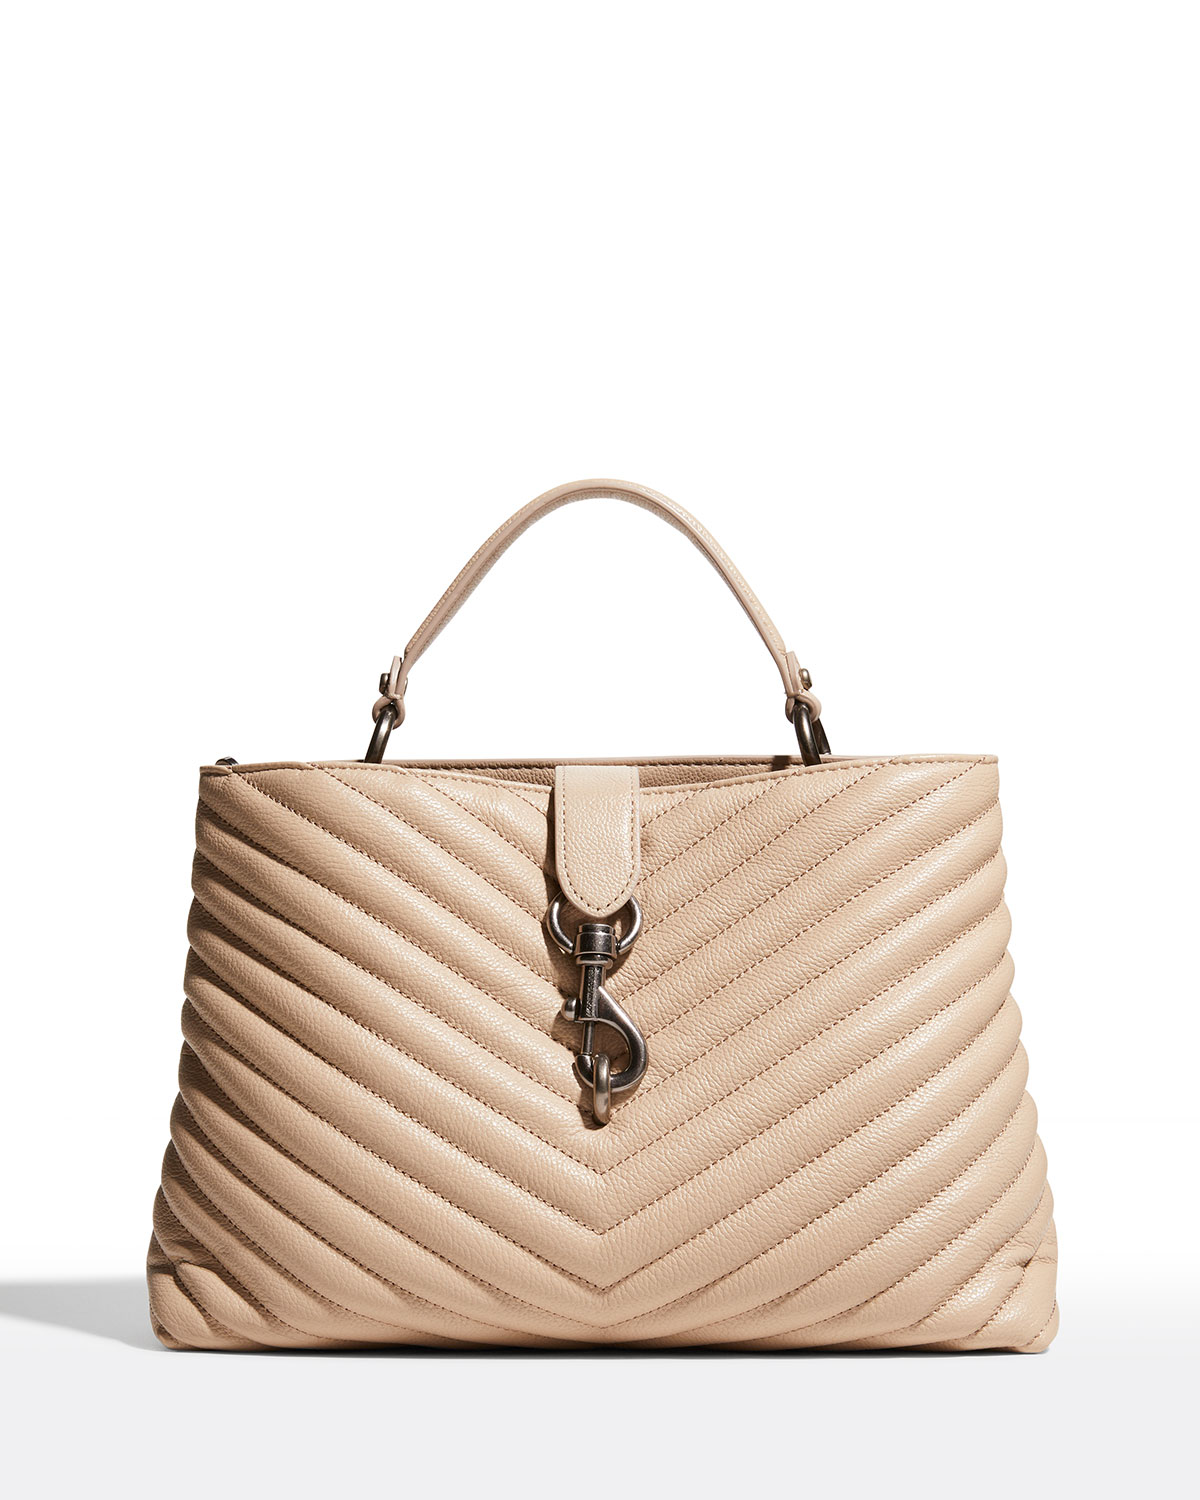 Rebecca Minkoff EDIE QUILTED LARGE TOP-HANDLE TOTE BAG, CASHMERE